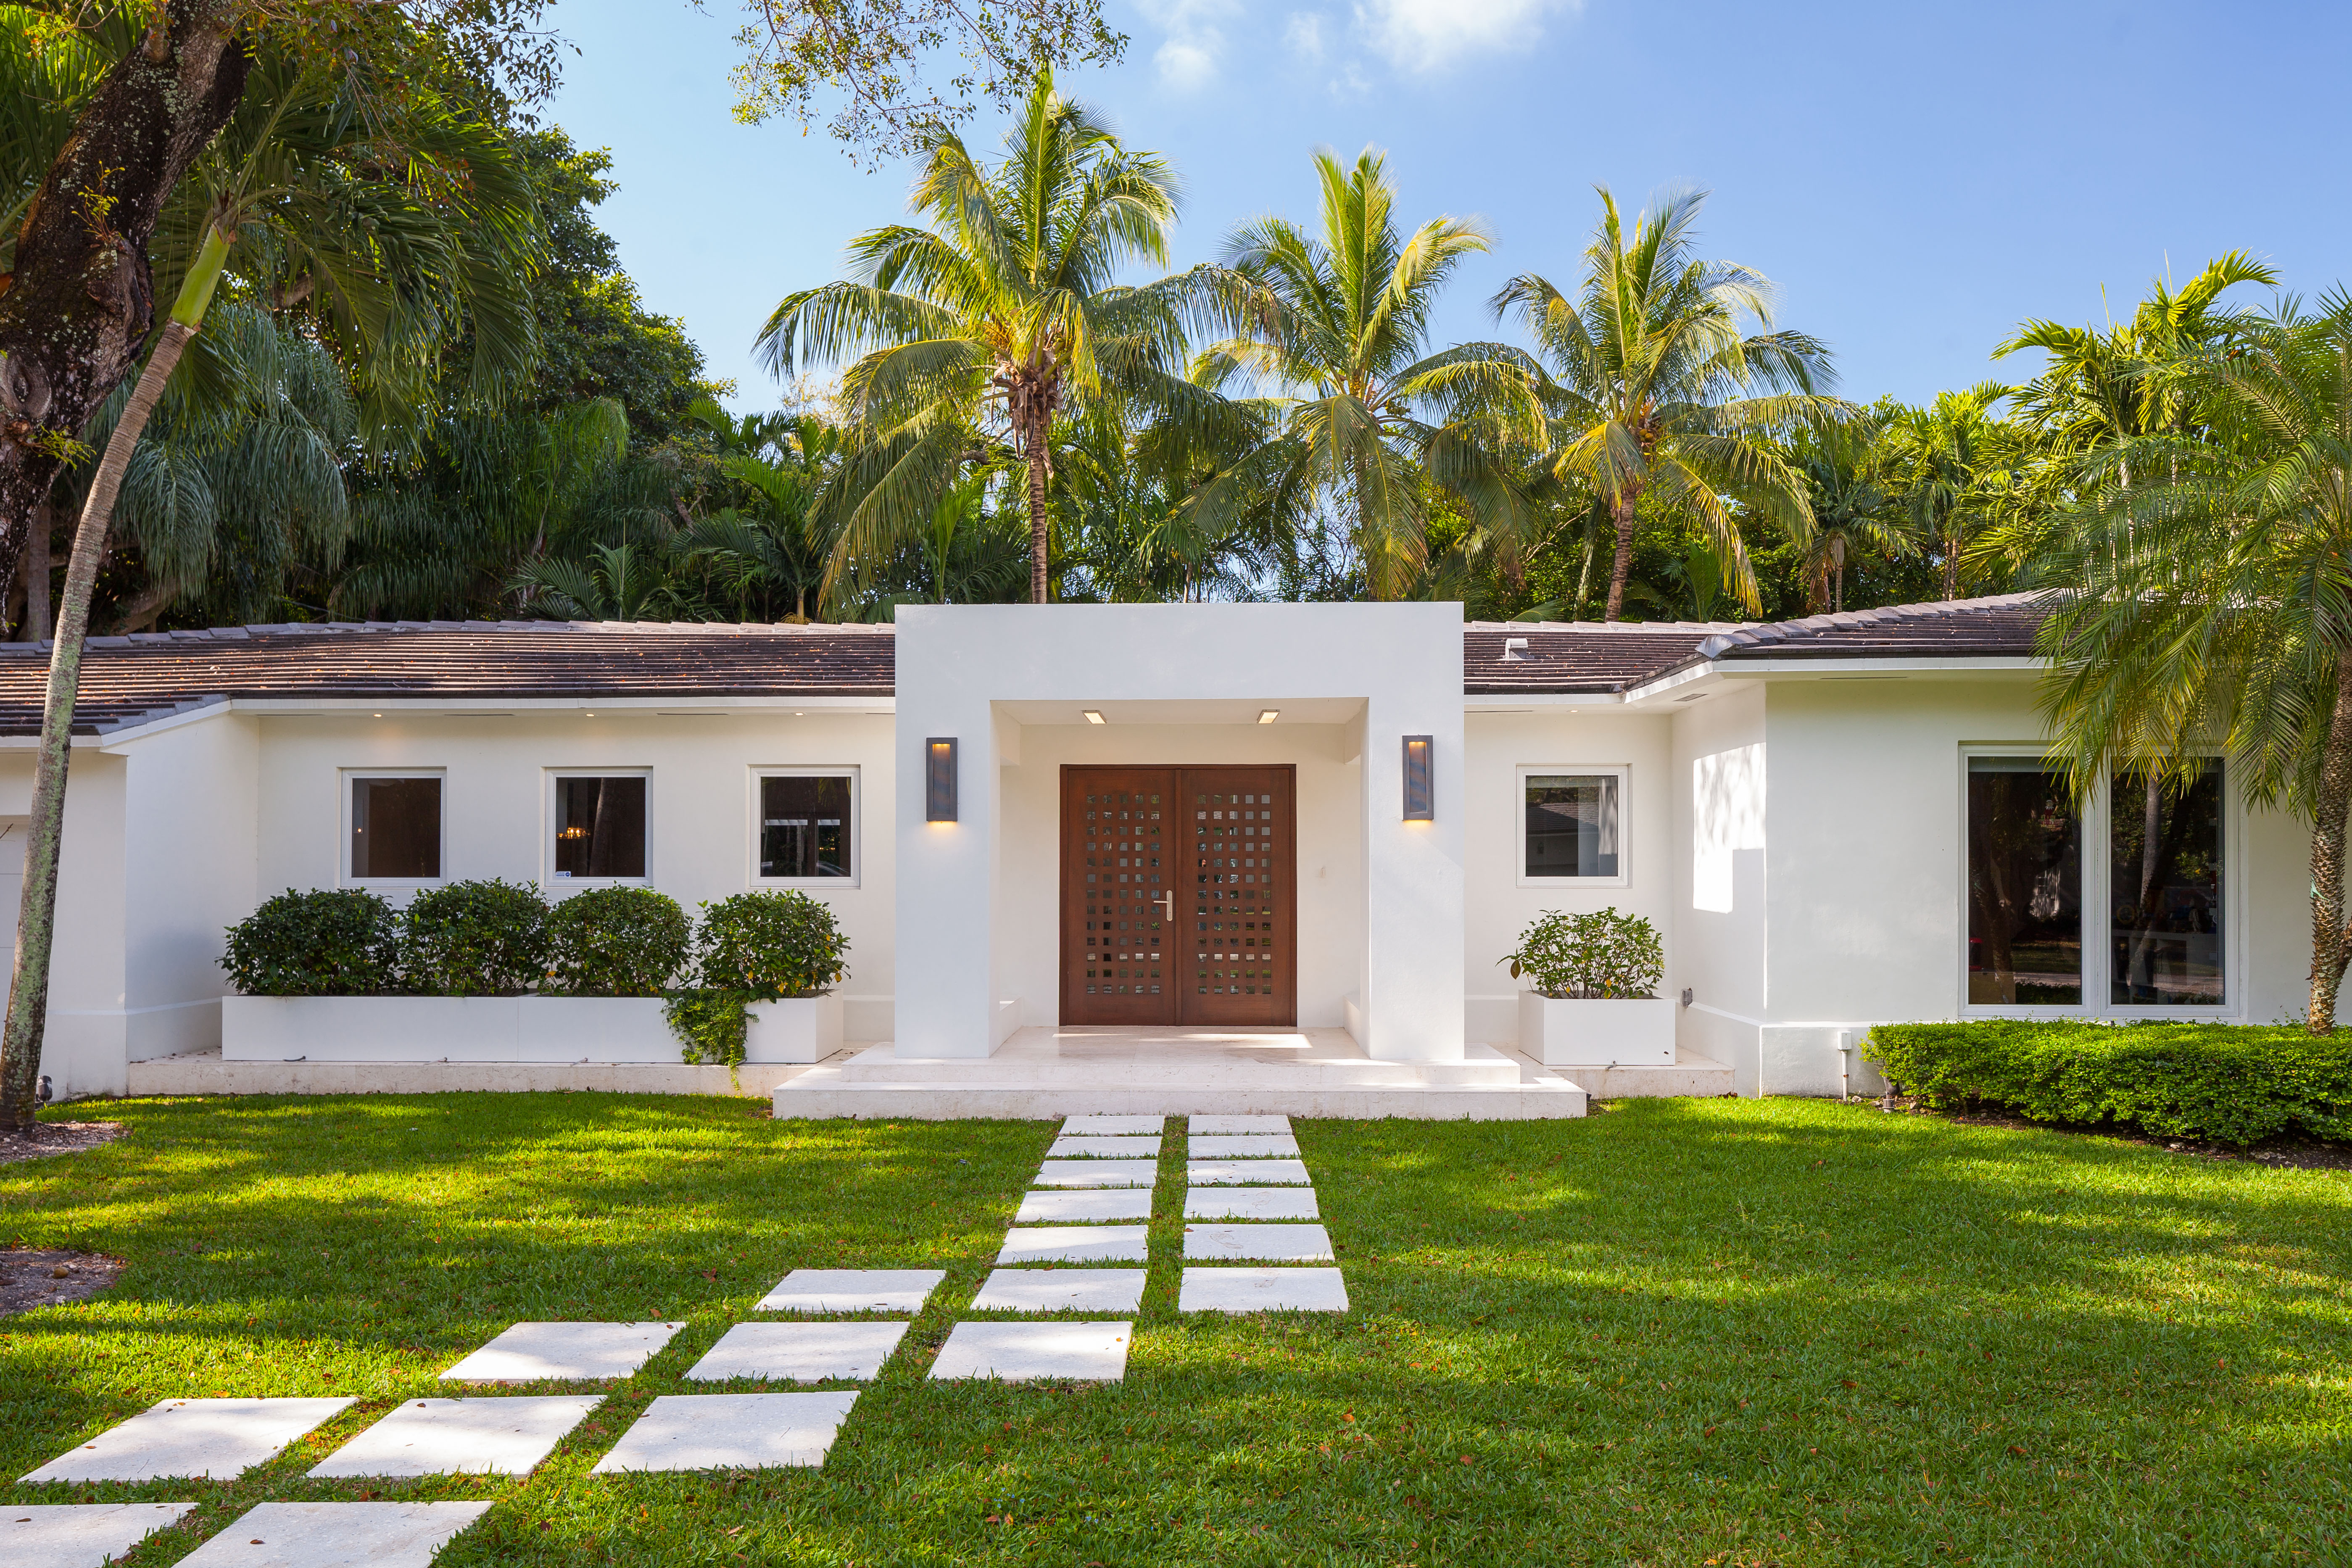 Single Family Home for Sale at 430 San Servando Ave Coral Gables, Florida, 33143 United States